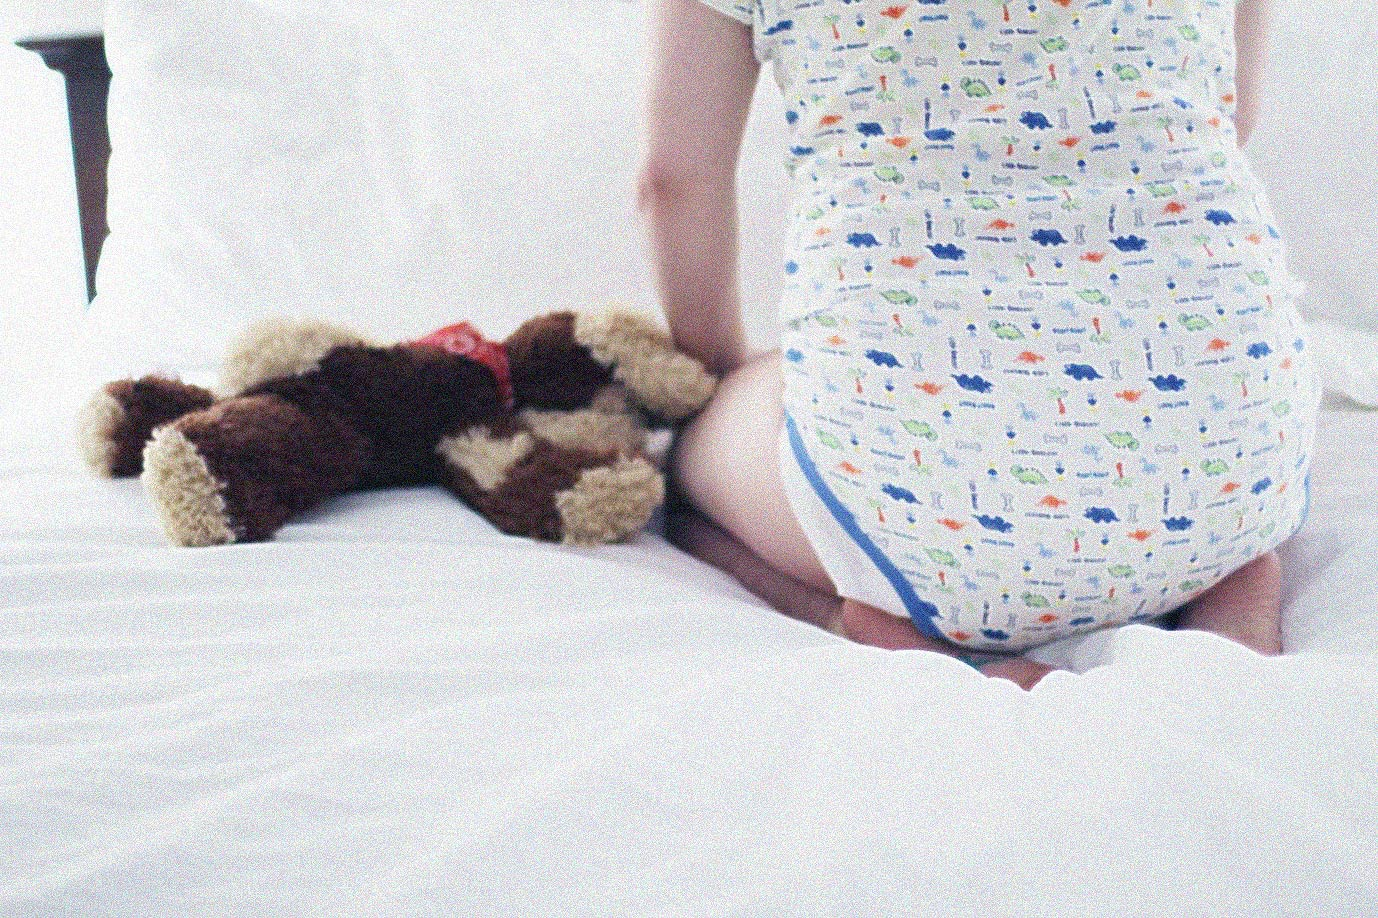 abdl boy in bed with plushy